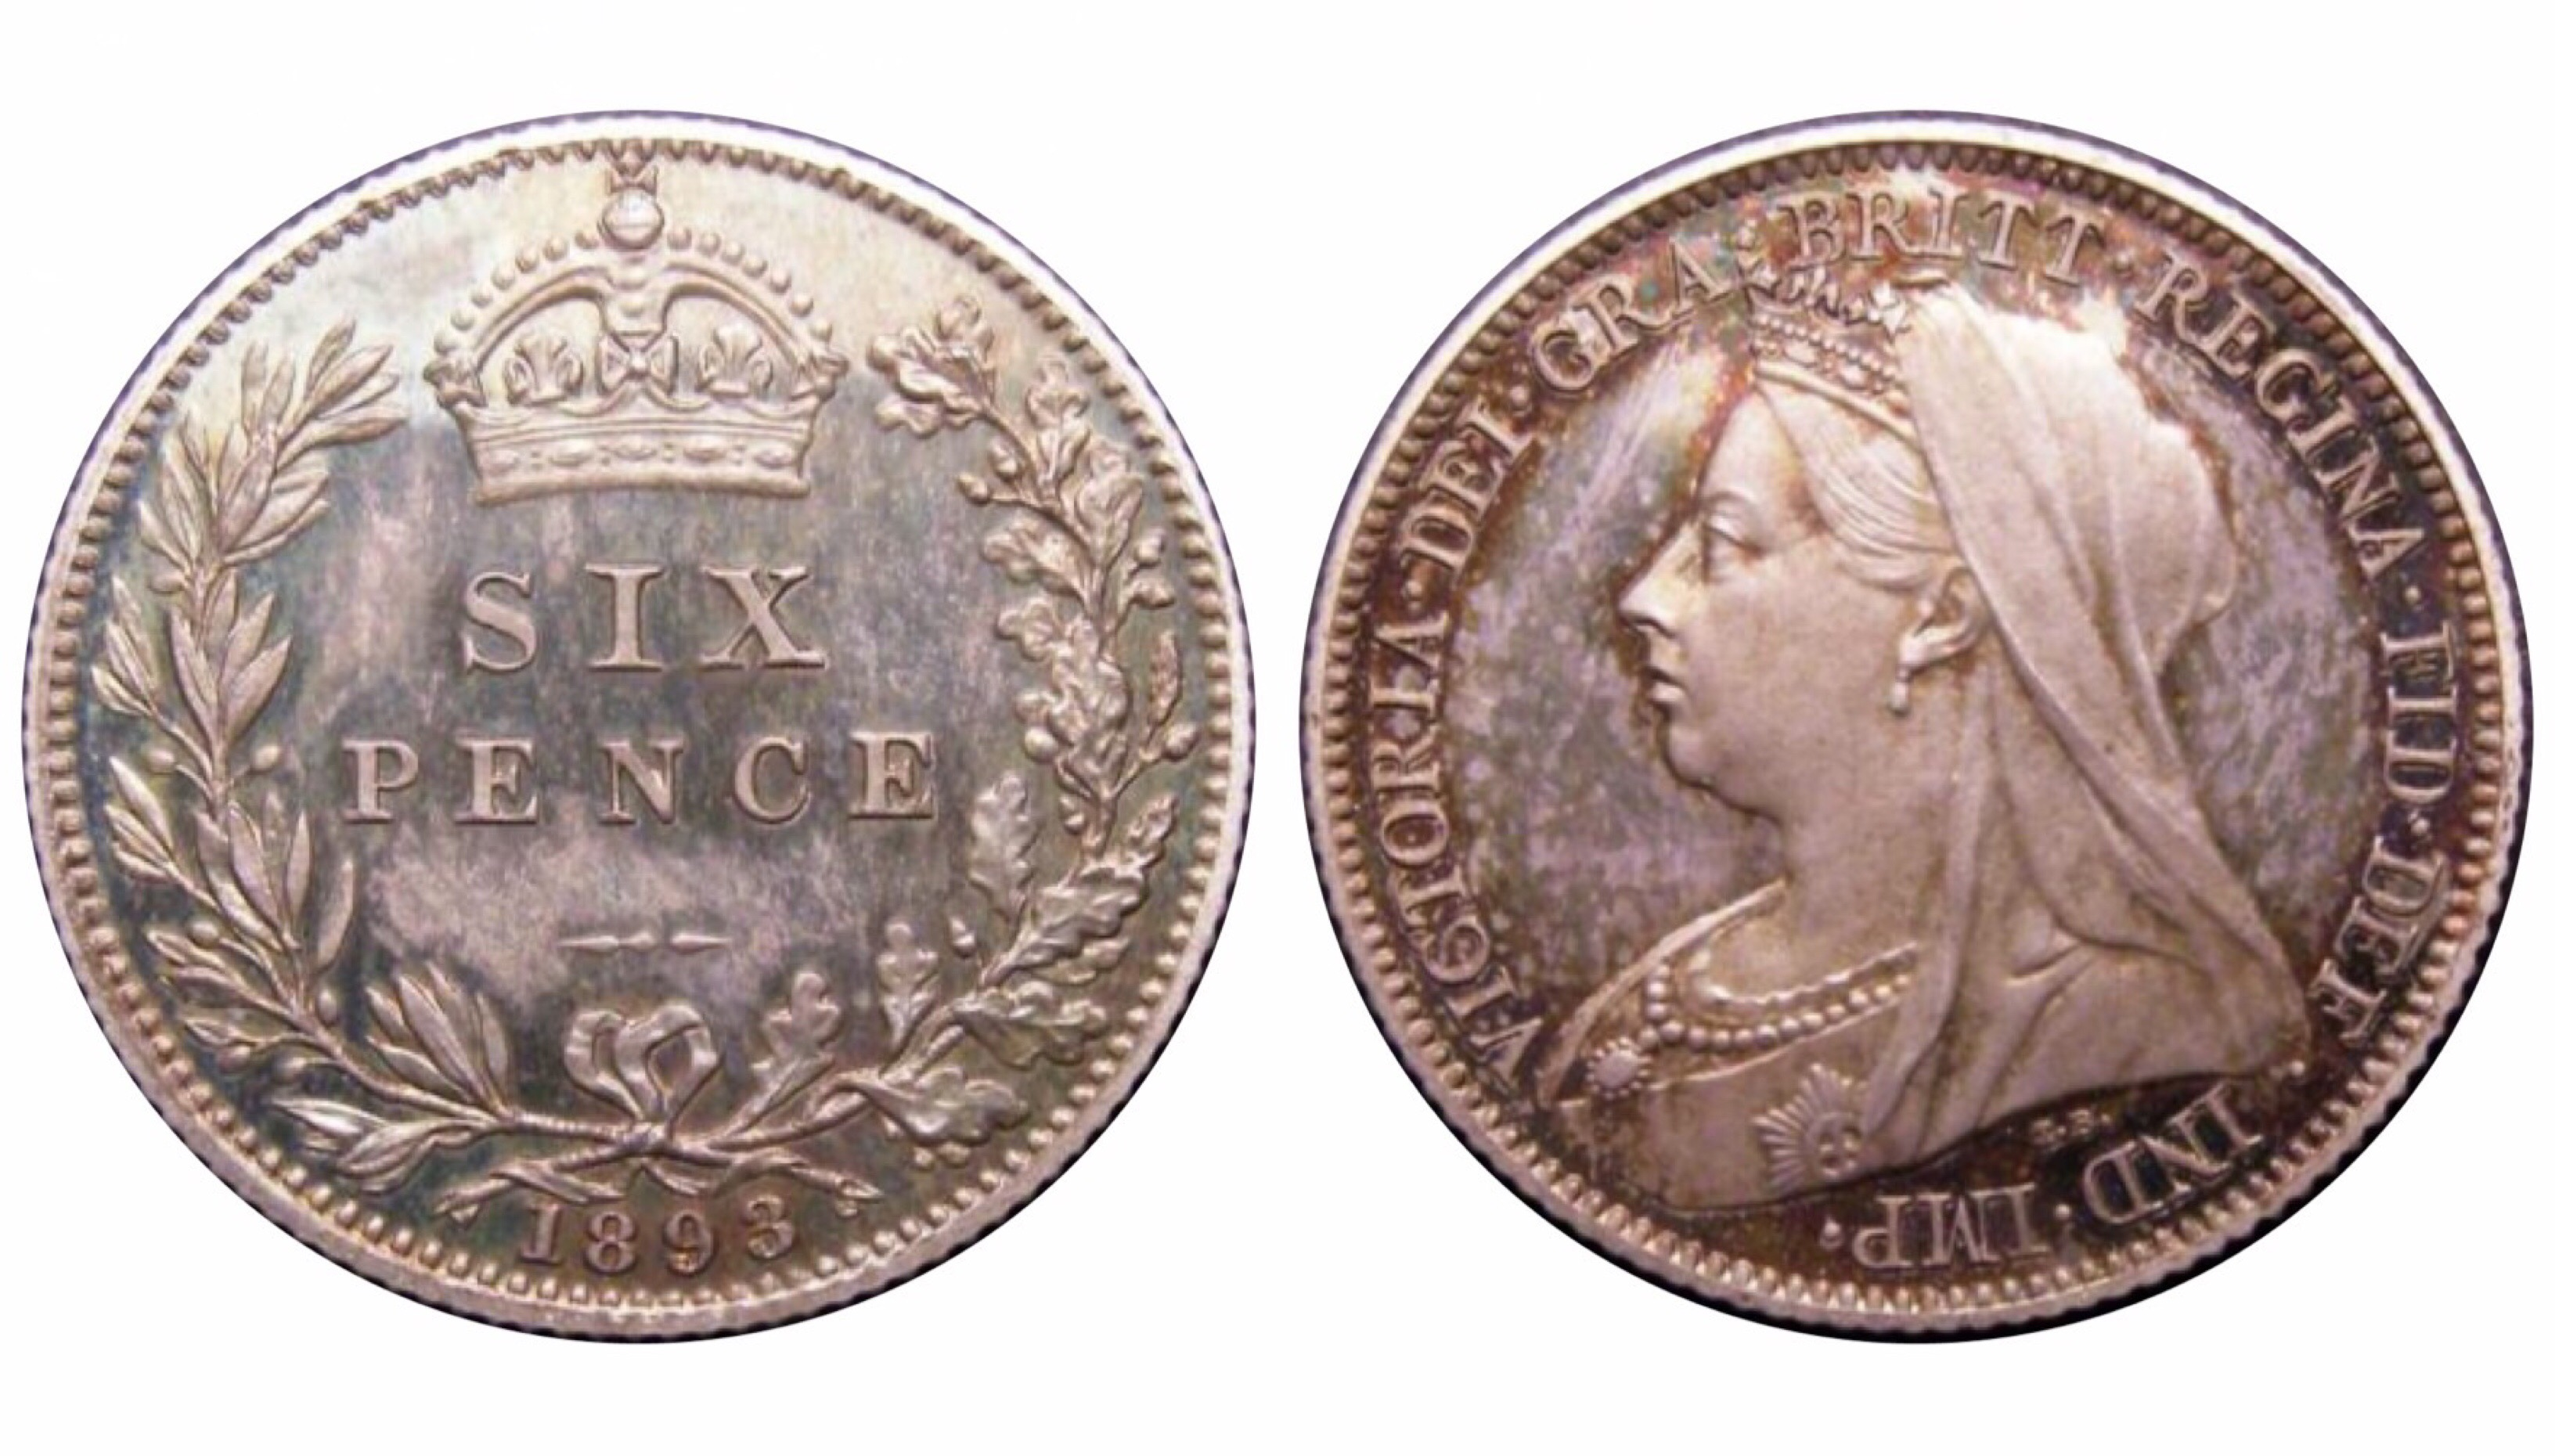 1893 Proof sixpence, CGS 88(MS 65-66), nFDC, ESC 1763, UIN 21084